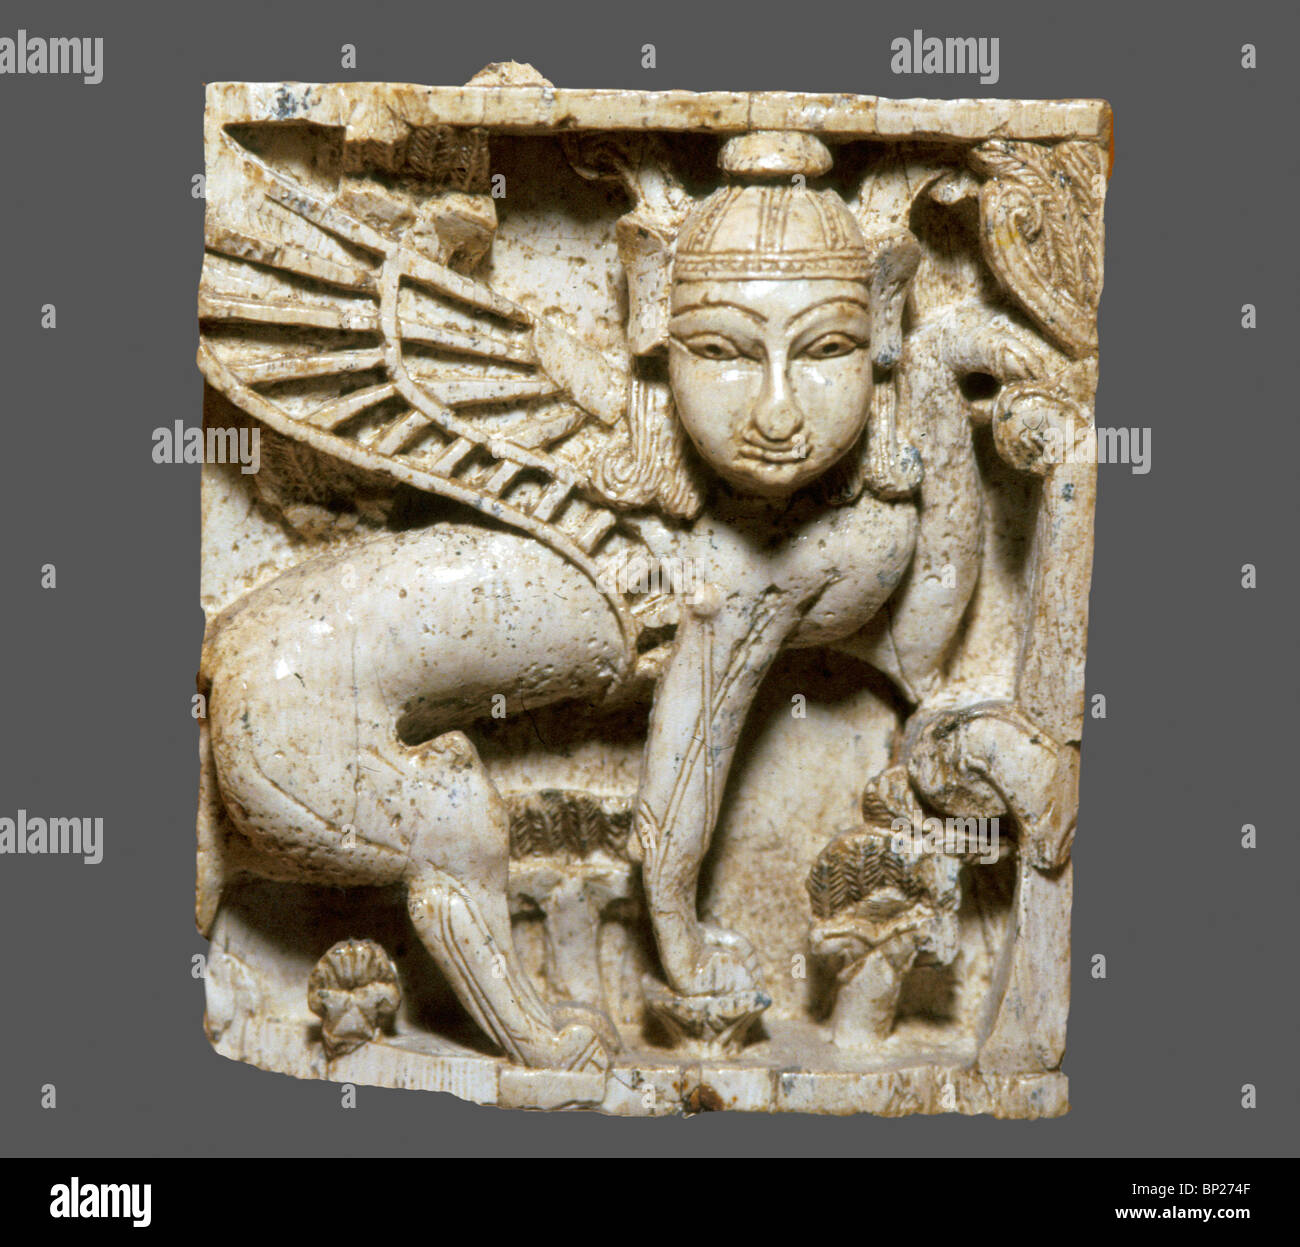 1458. PHOENICIAN IVORY PLATE, CARVING OF A WINGED SPHINX, C. 9TH C. BC. - Stock Image